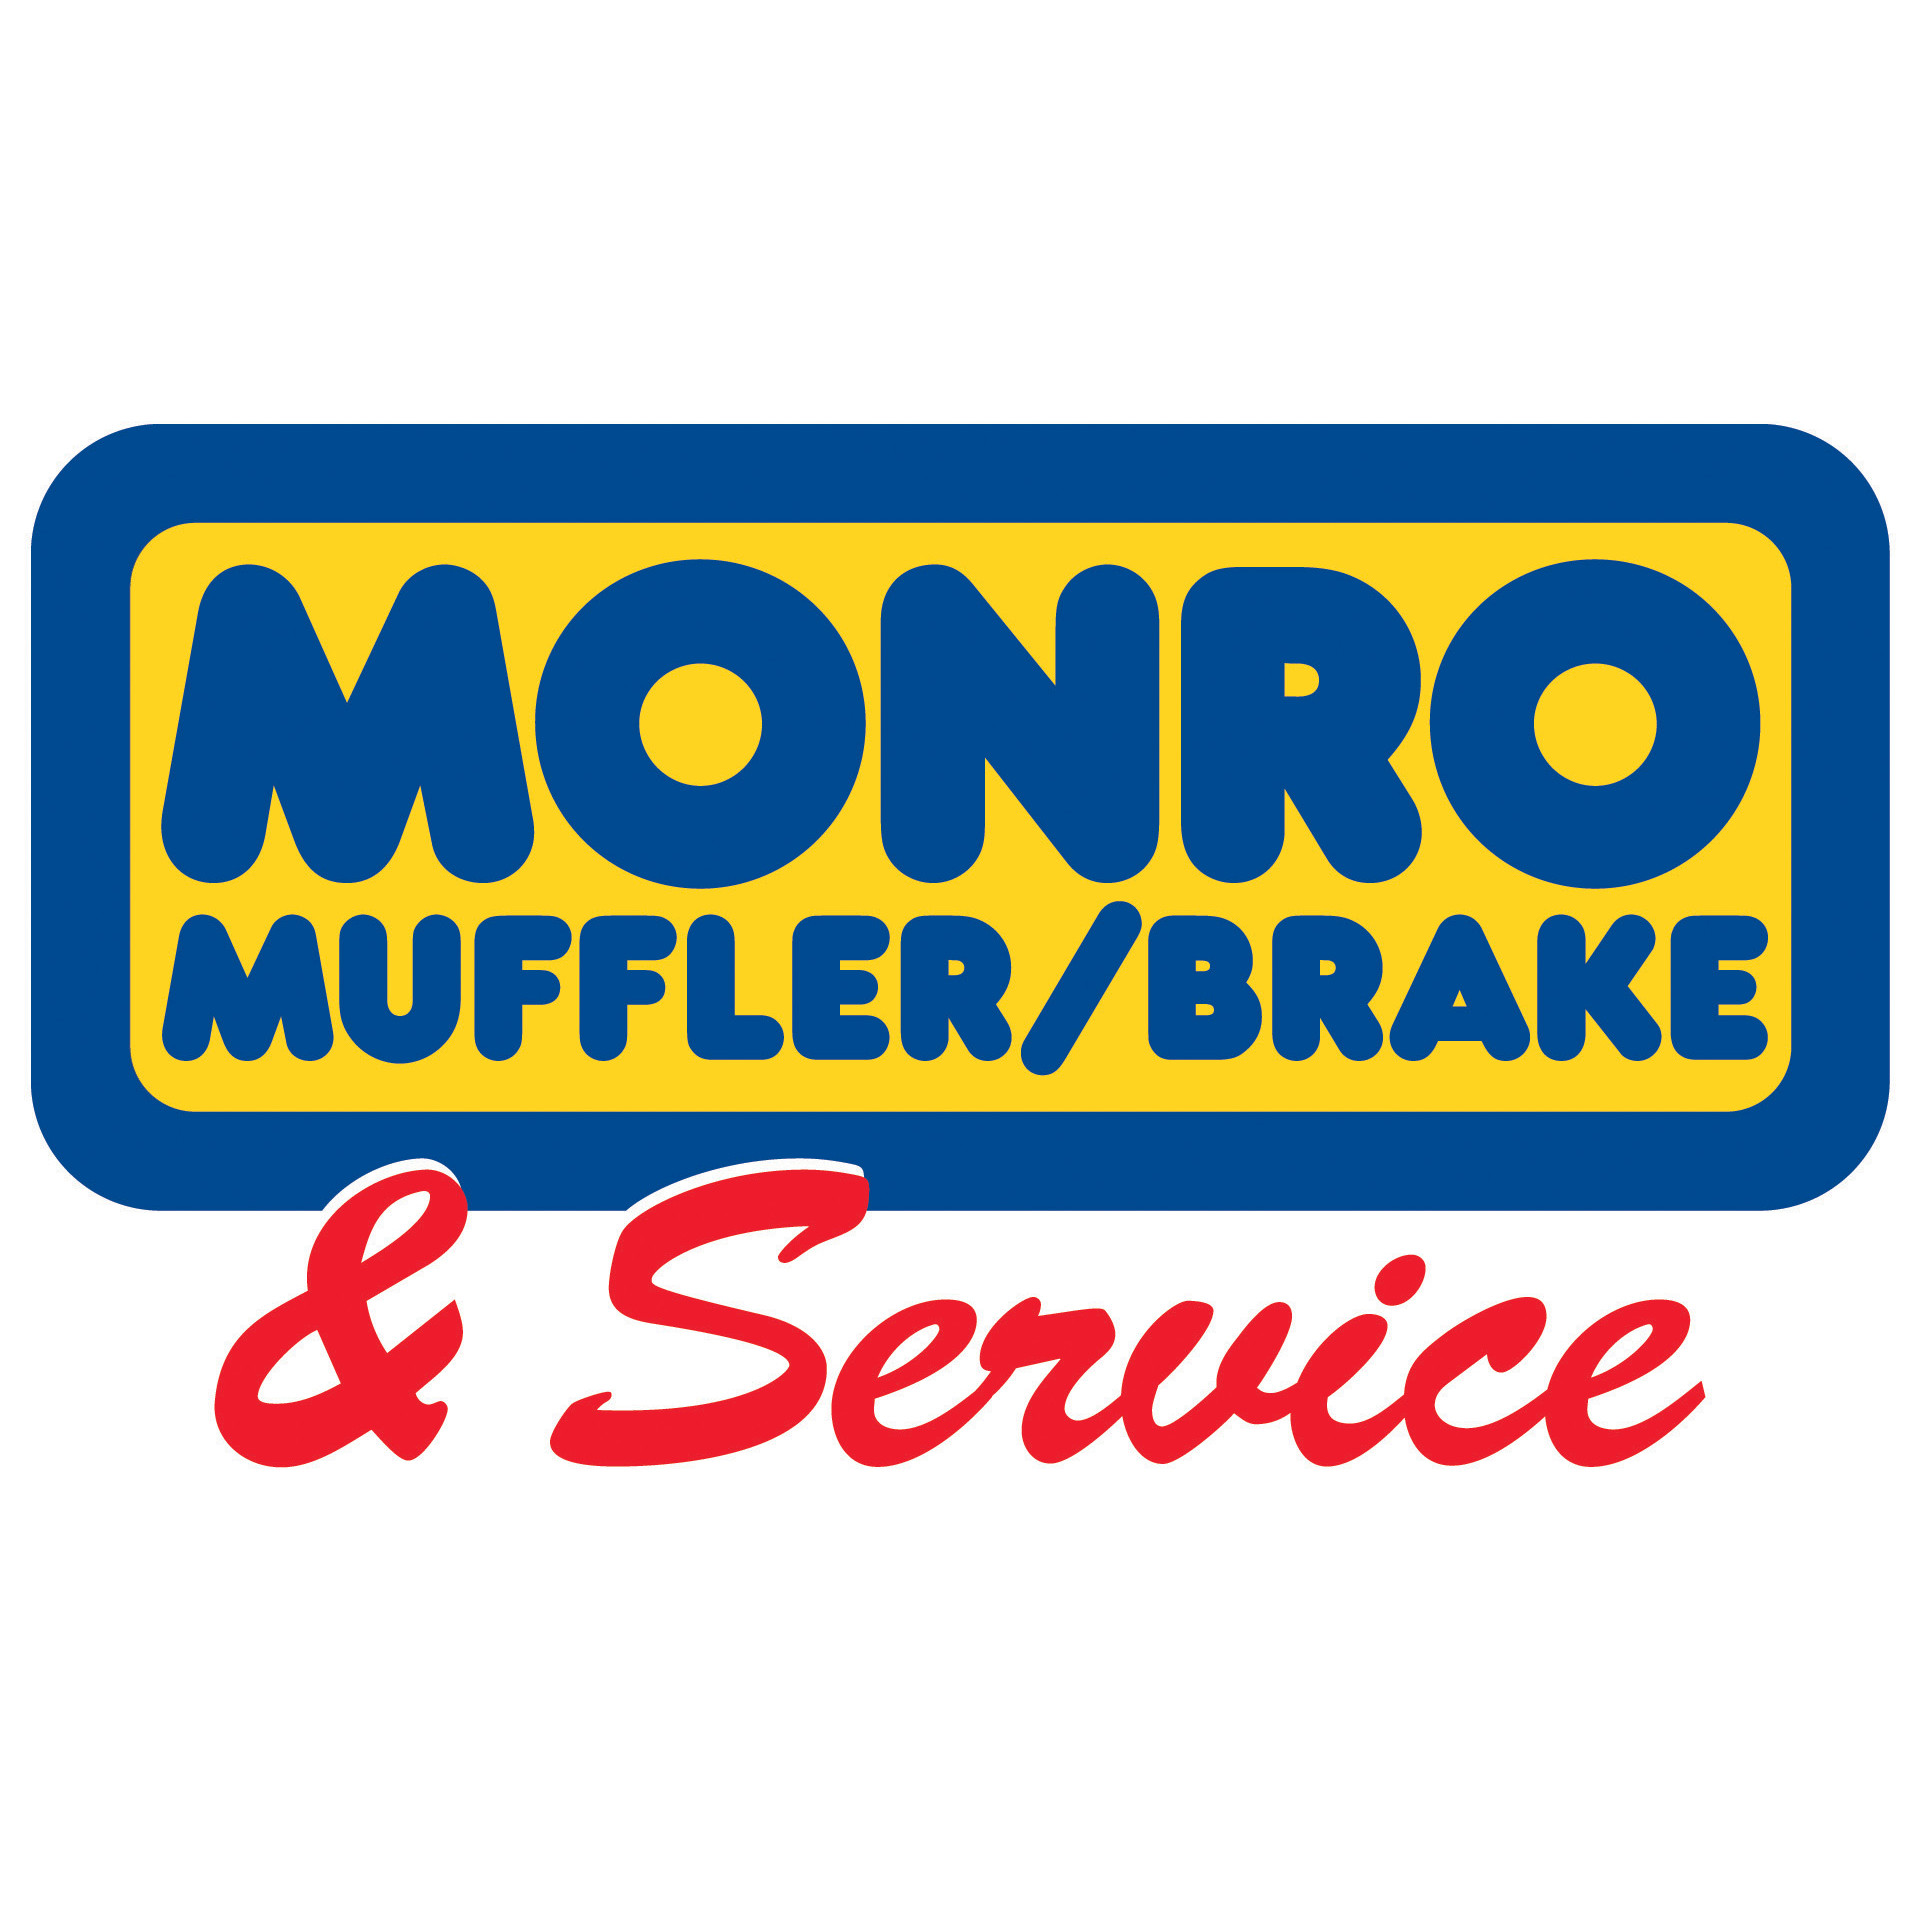 Check special coupons and deals from the official website of Monro Muffler Brake And Service